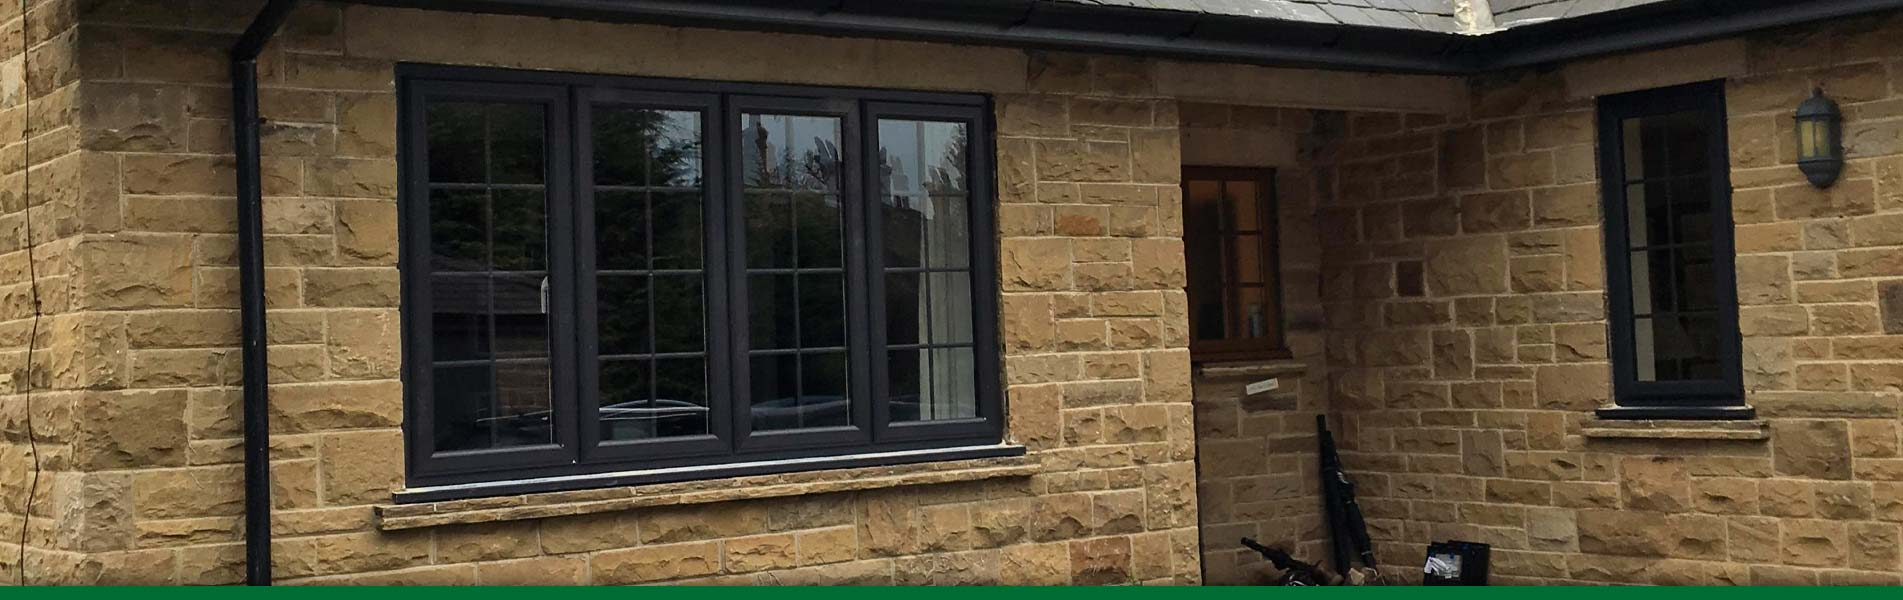 New Addition Windows Ltd Slider 2